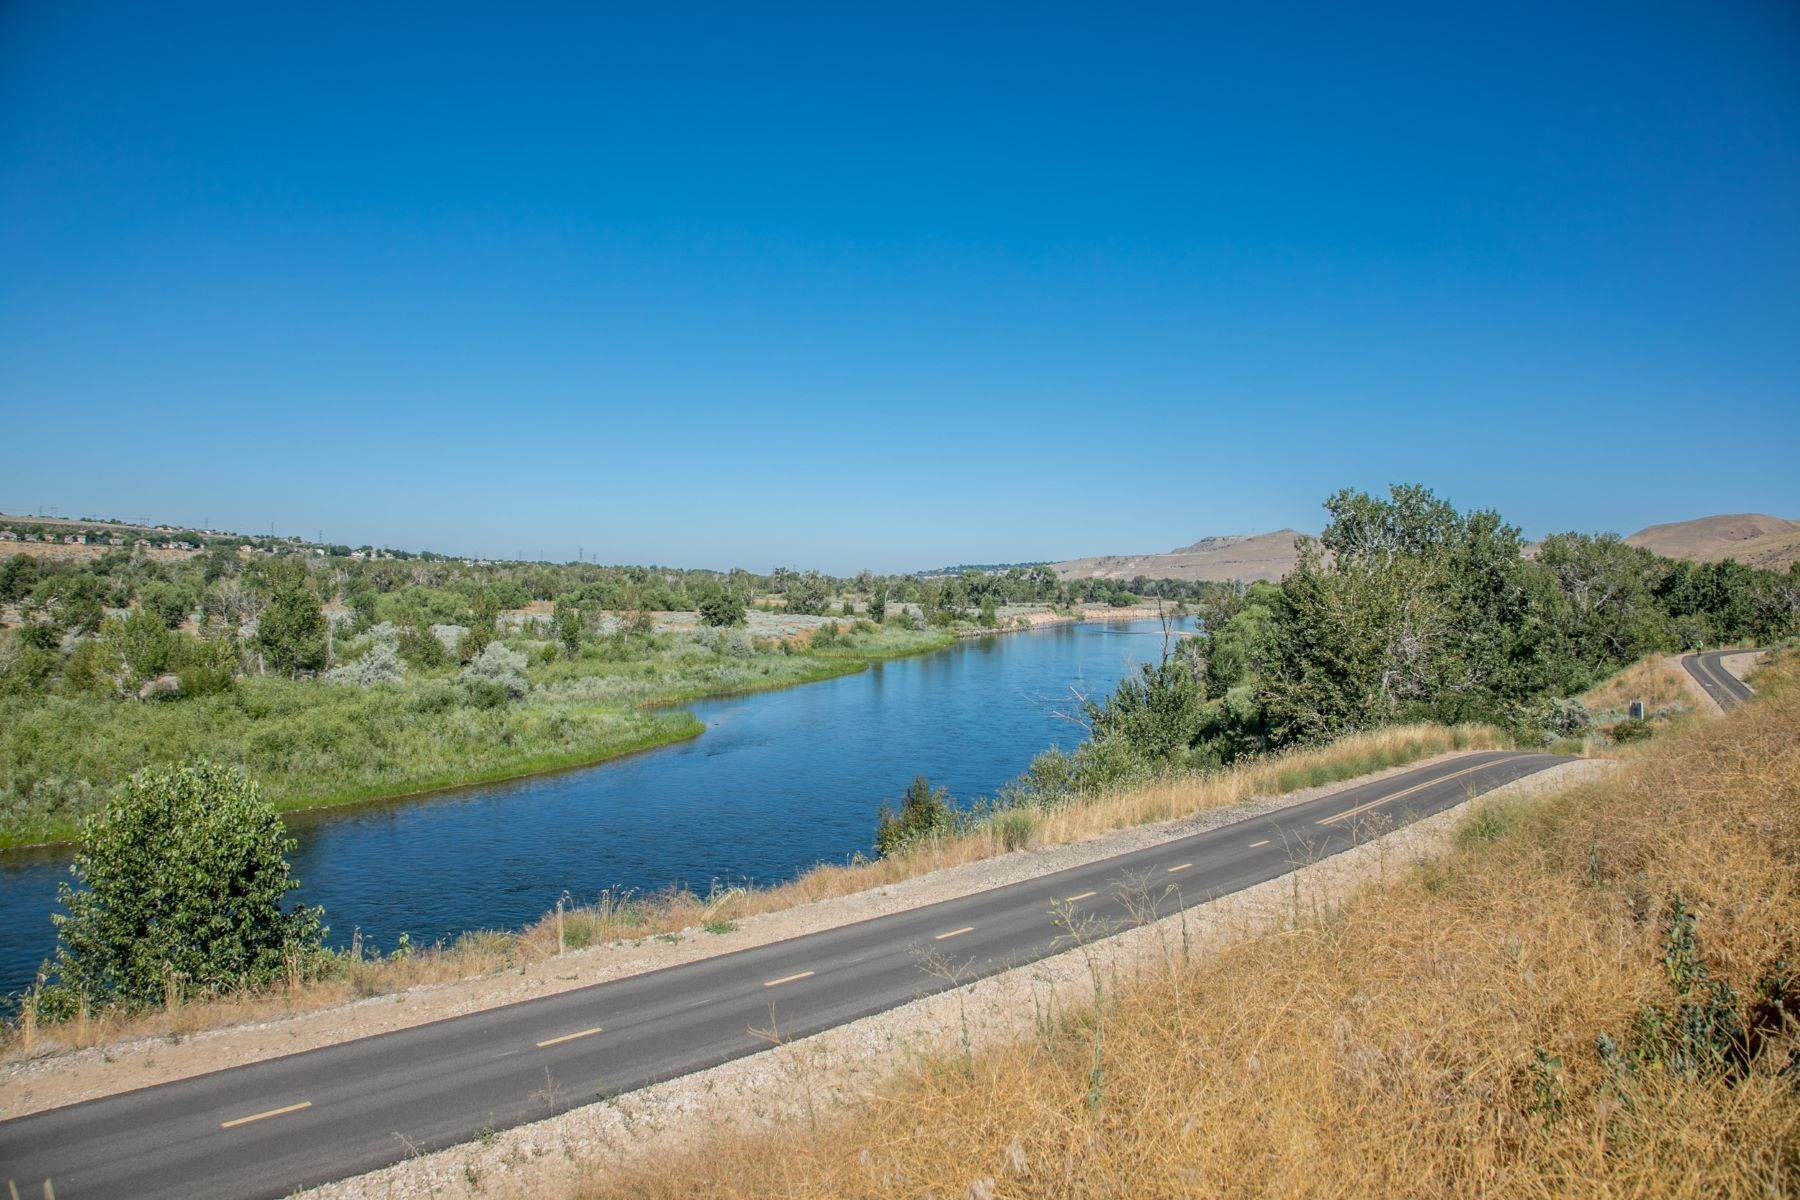 Land for Sale at 7013 Los Carneros Drive Boise, Idaho 83716